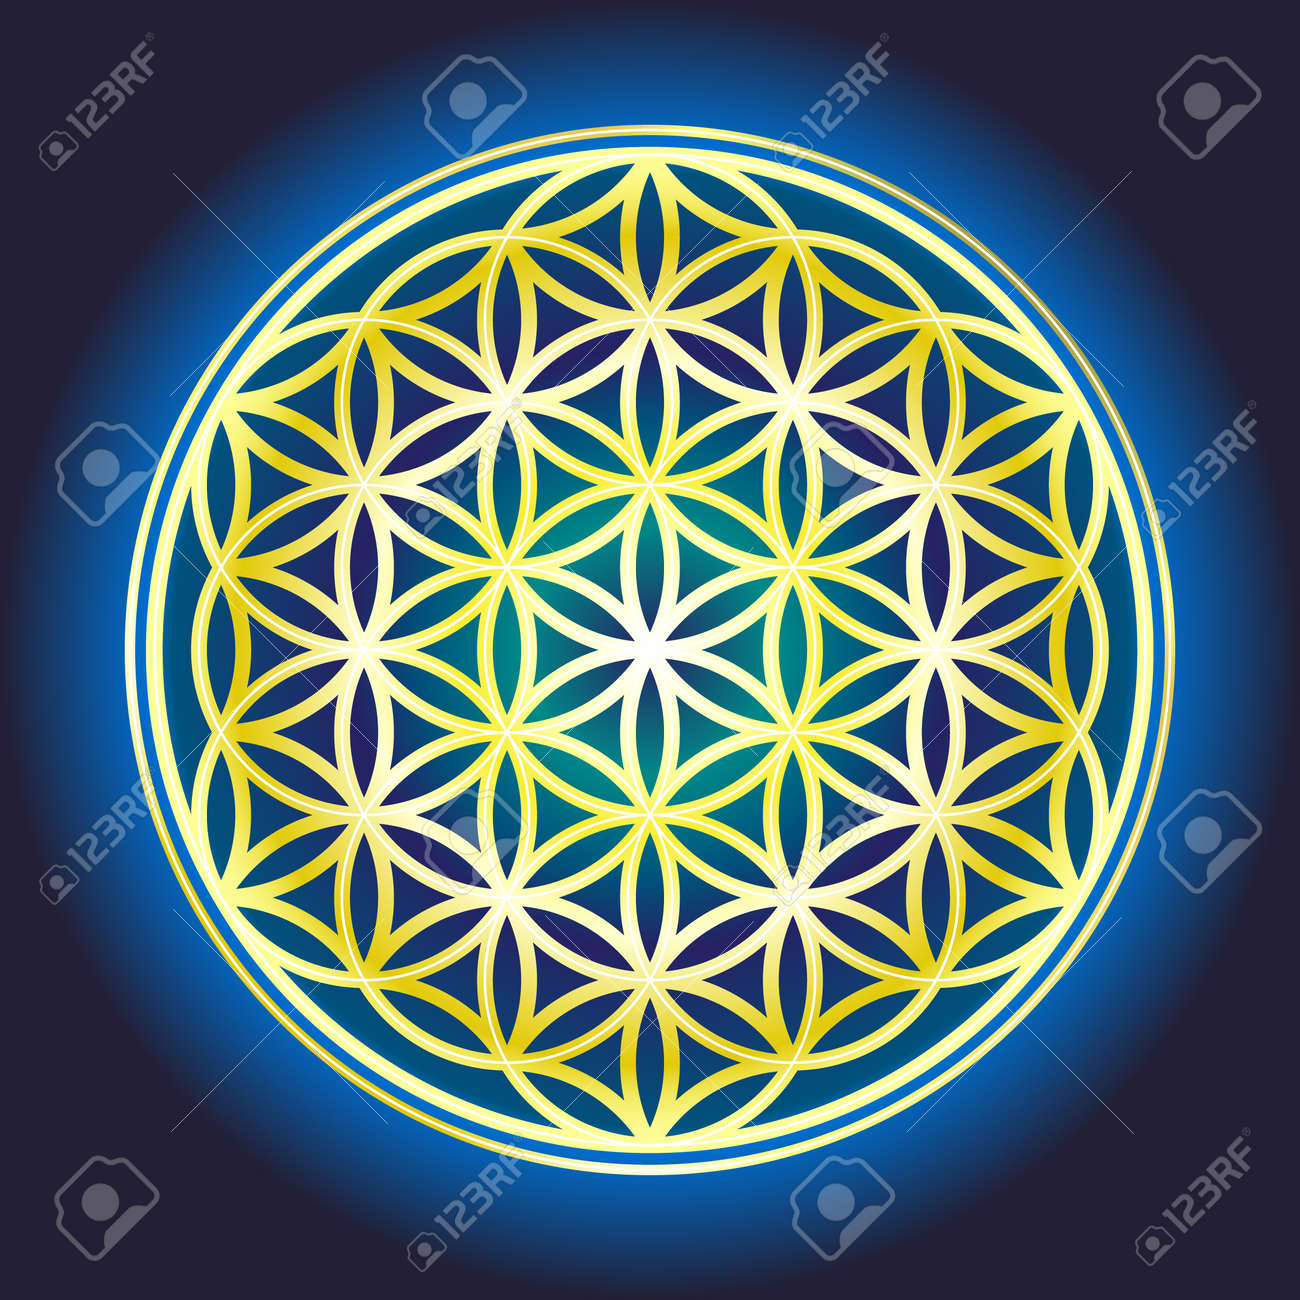 The flower Of Life Banque d'images - 36416772